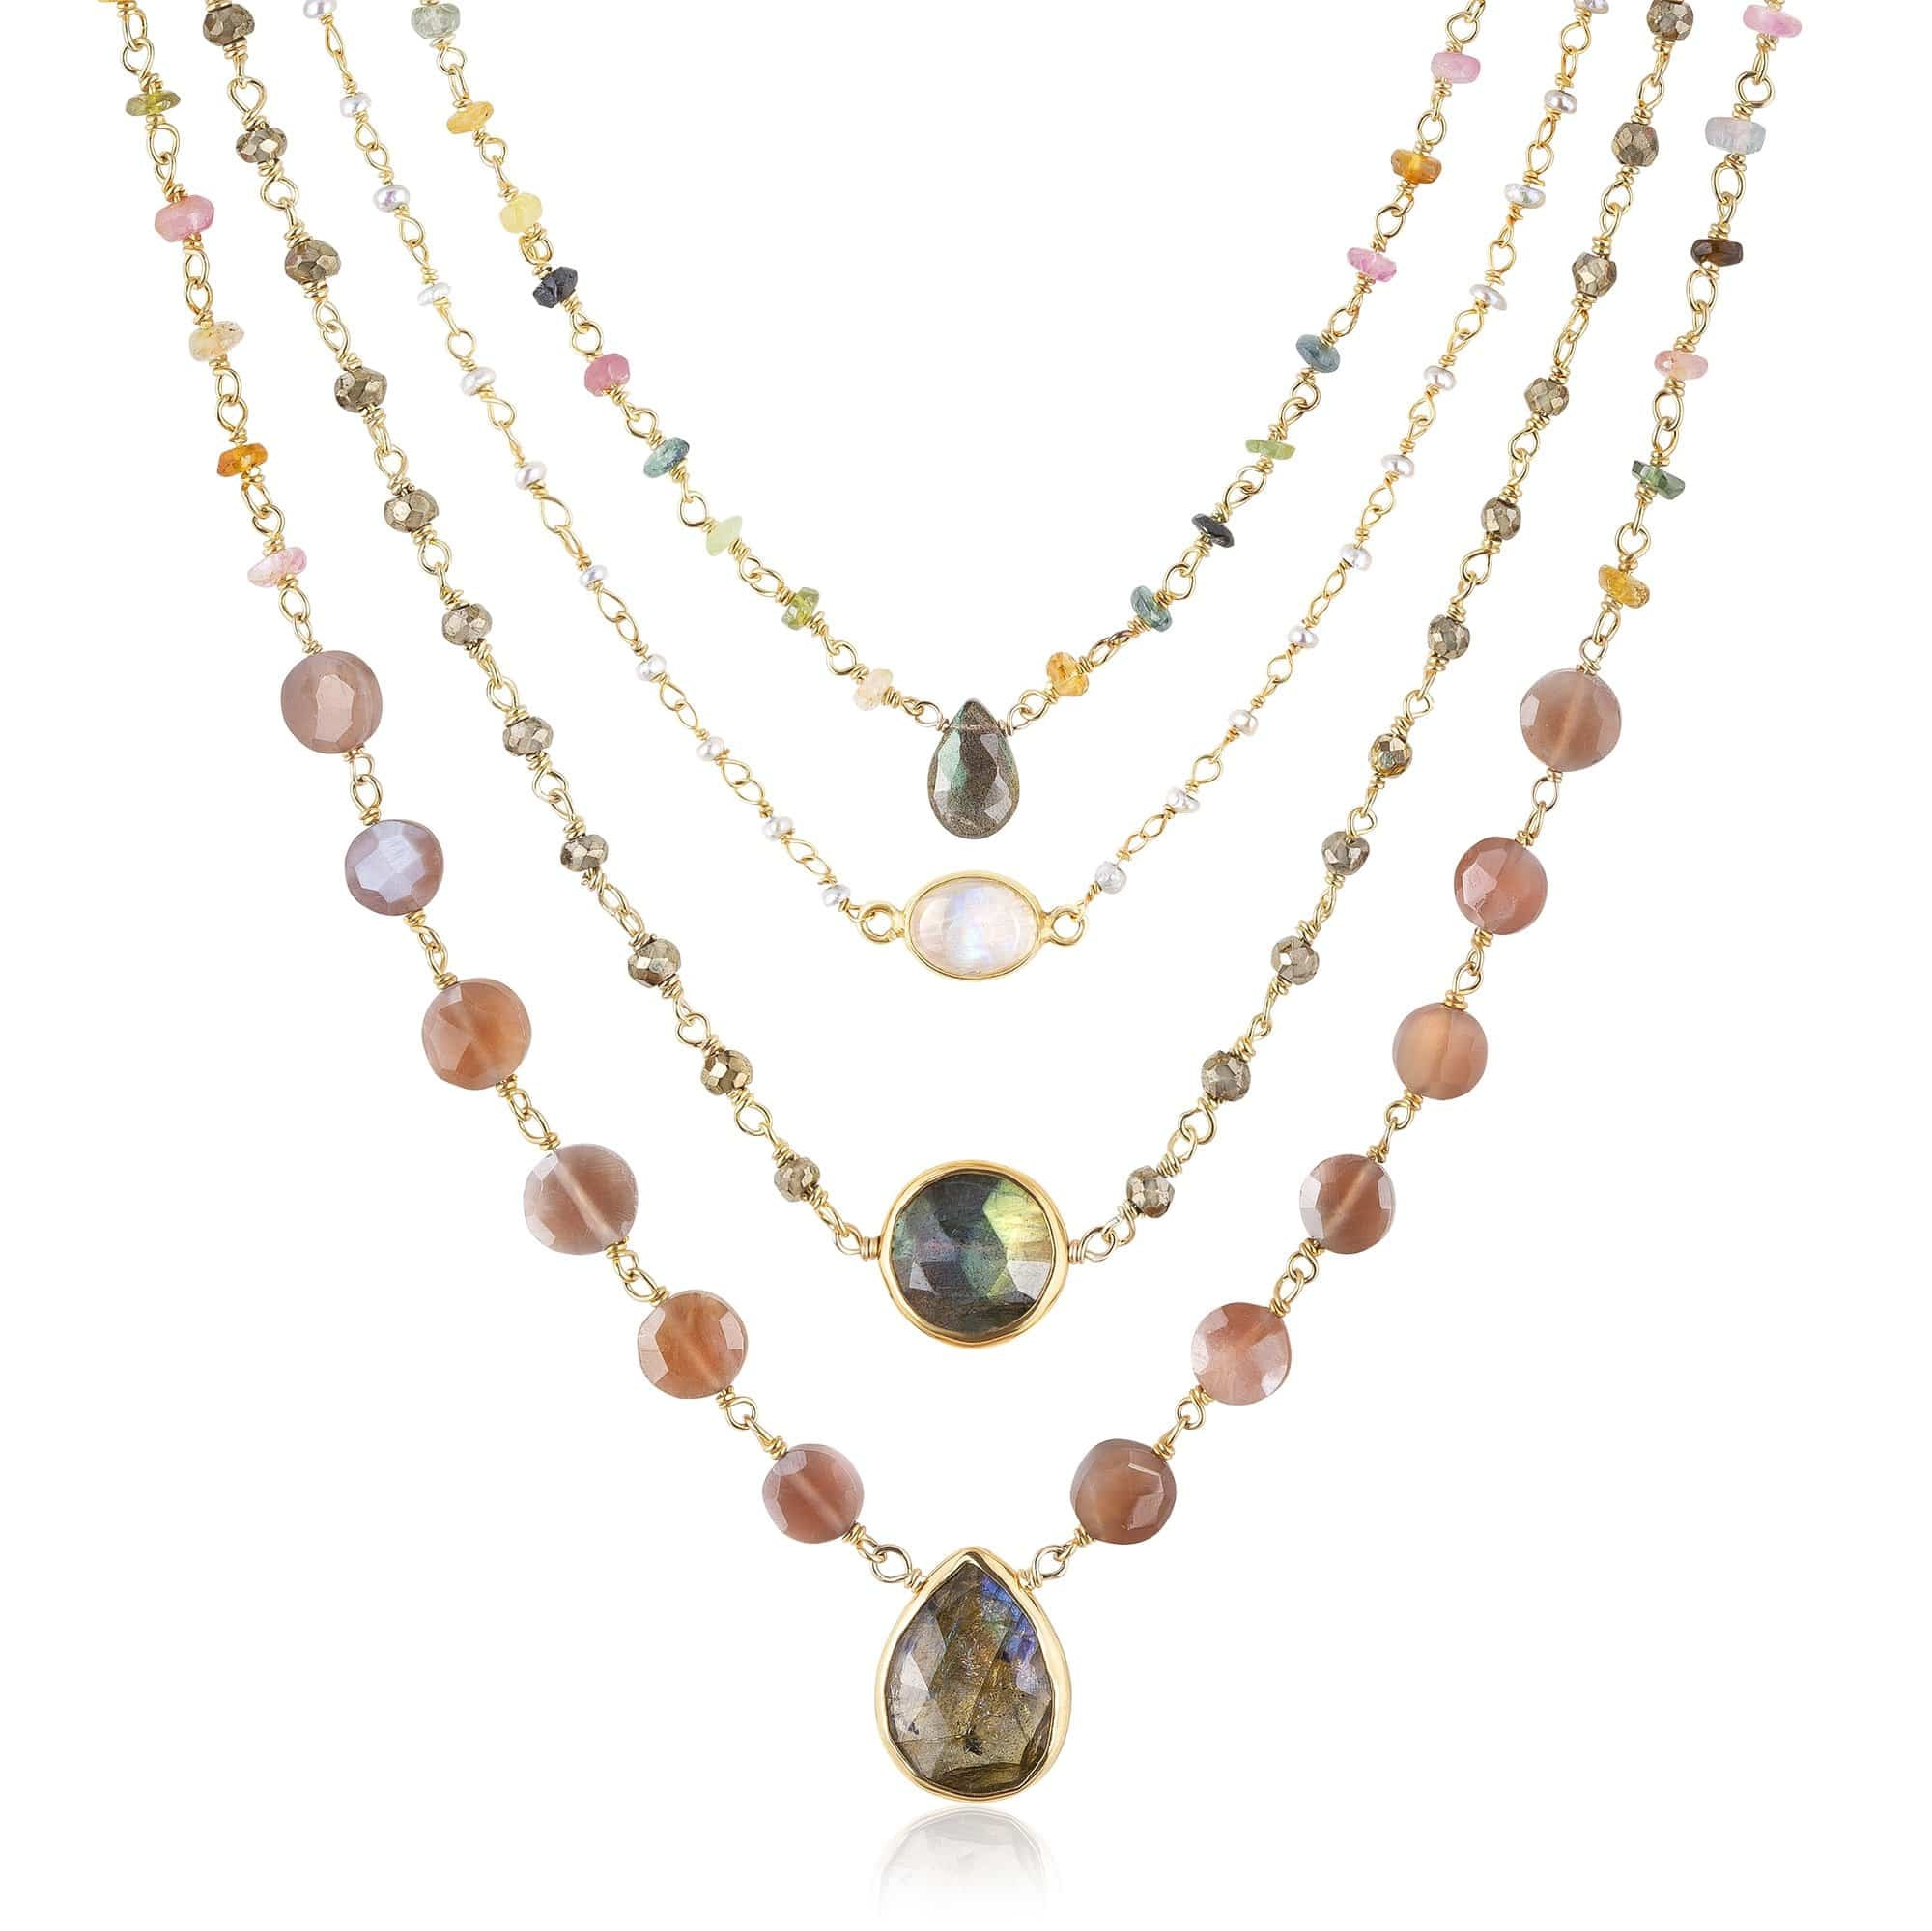 ela rae blush necklace set of 4 pyrite tourmaline rainbow moonstone brown moonstone 14k yellow gold plate